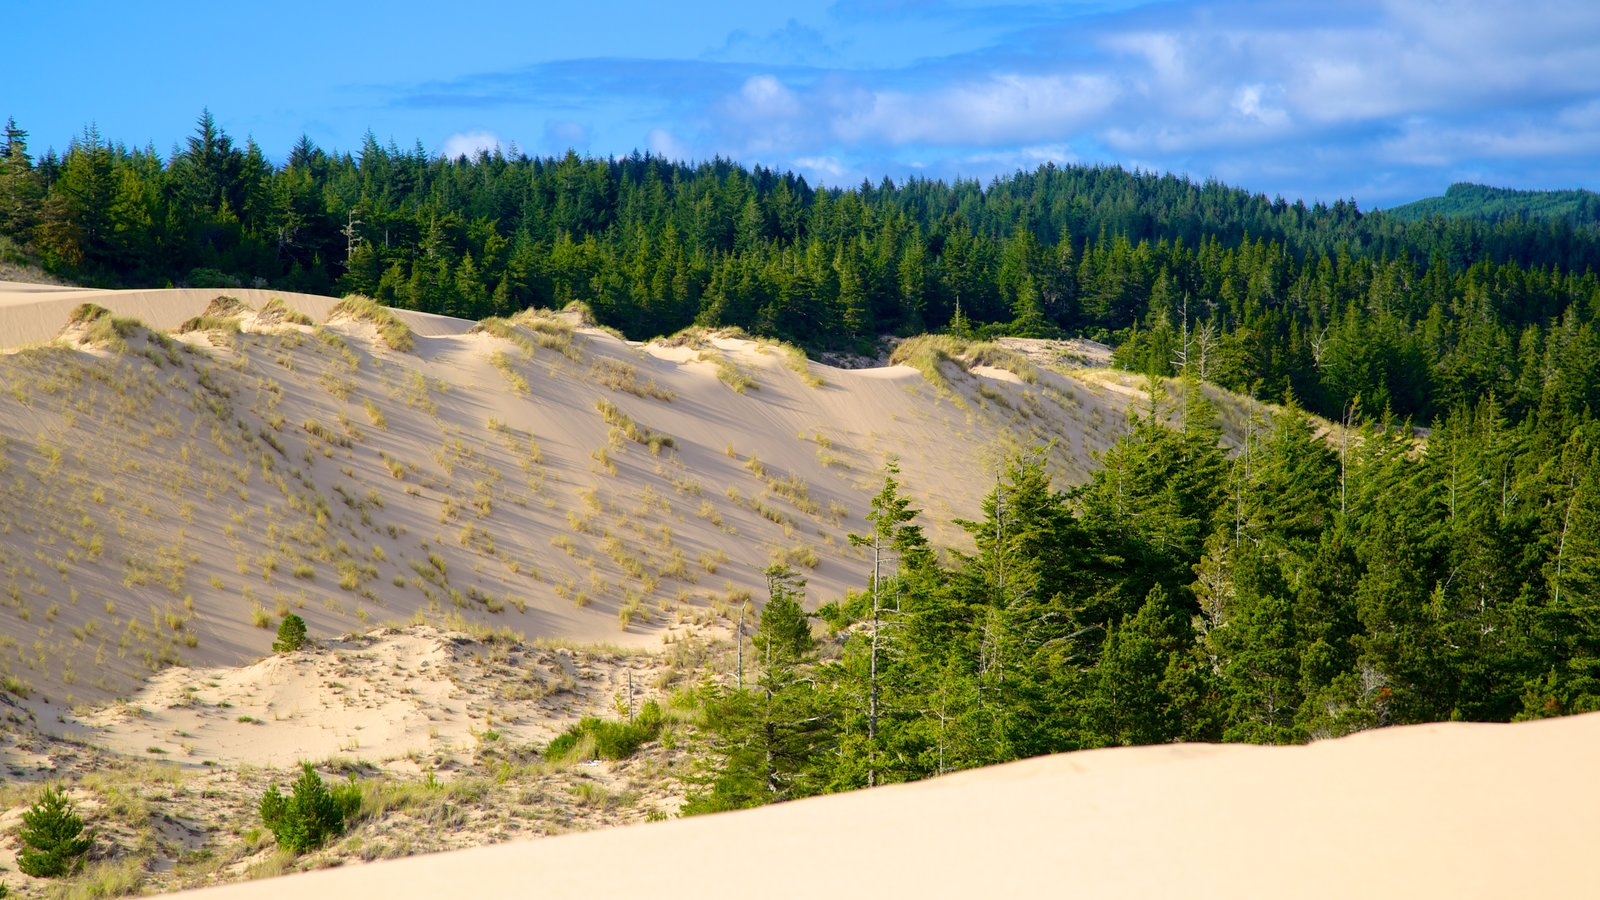 Reedsport which includes forests and desert views